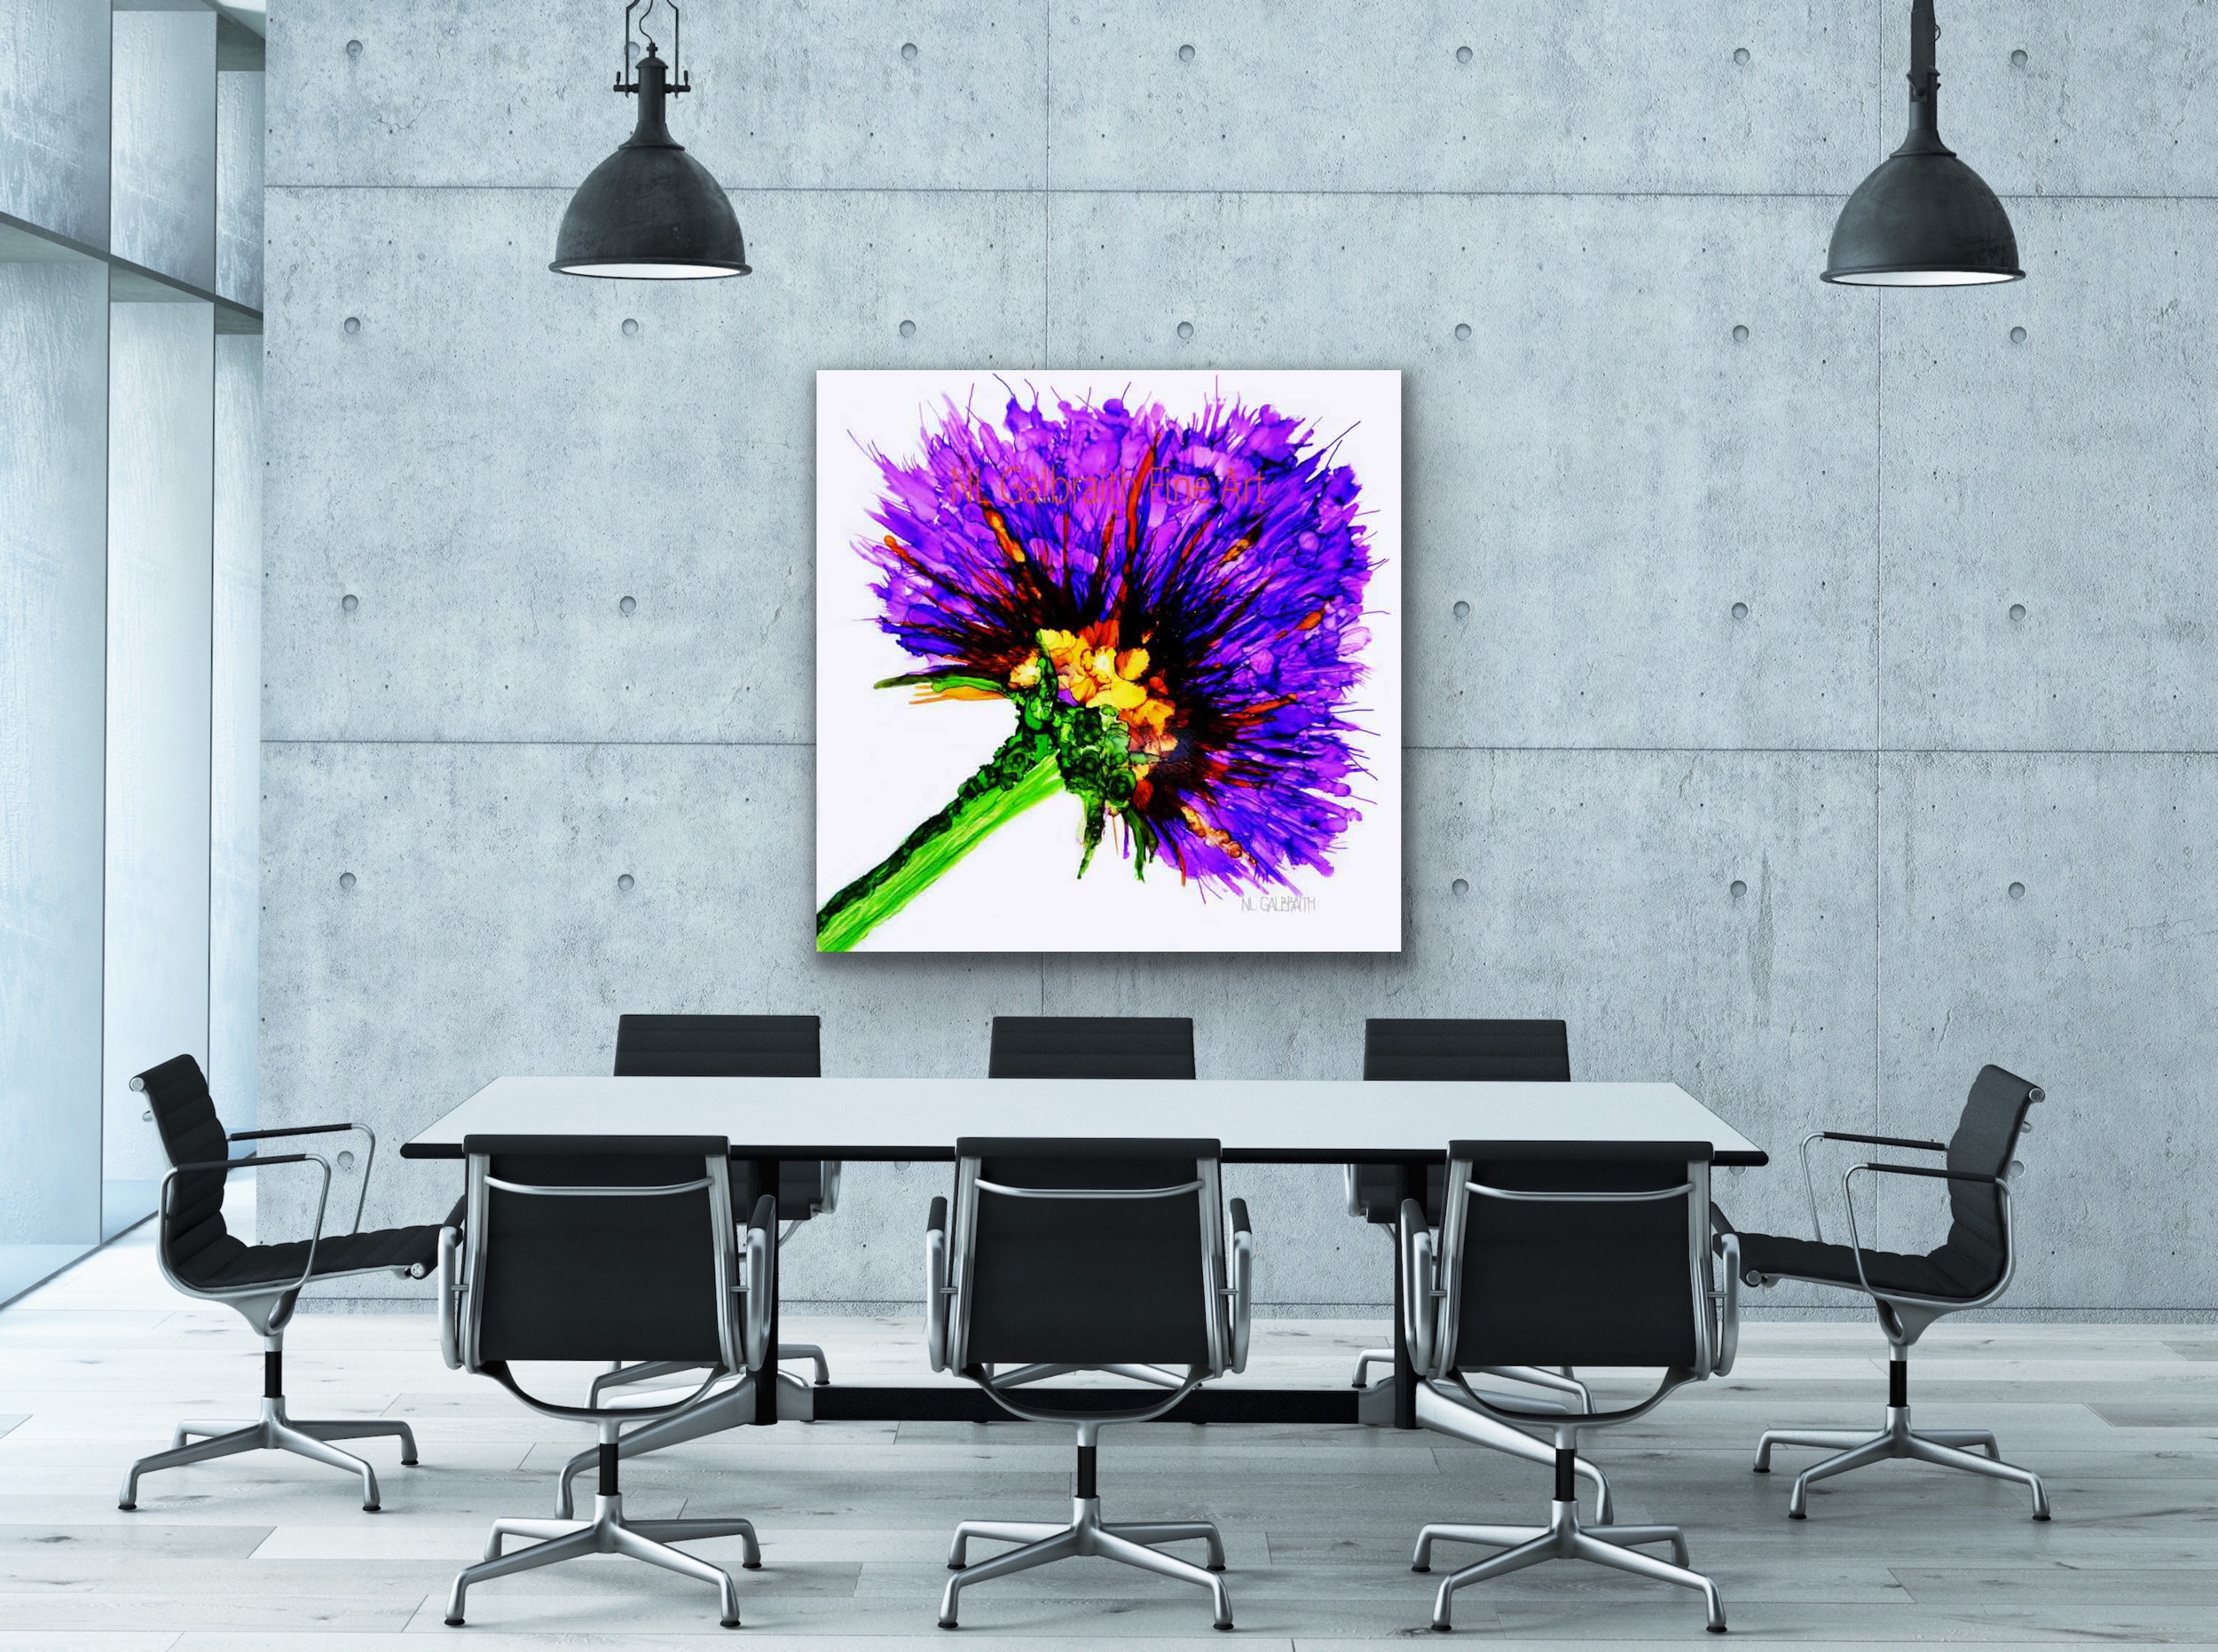 Oversized Fine Art Purple Flower Graphic in an Office Conference Room